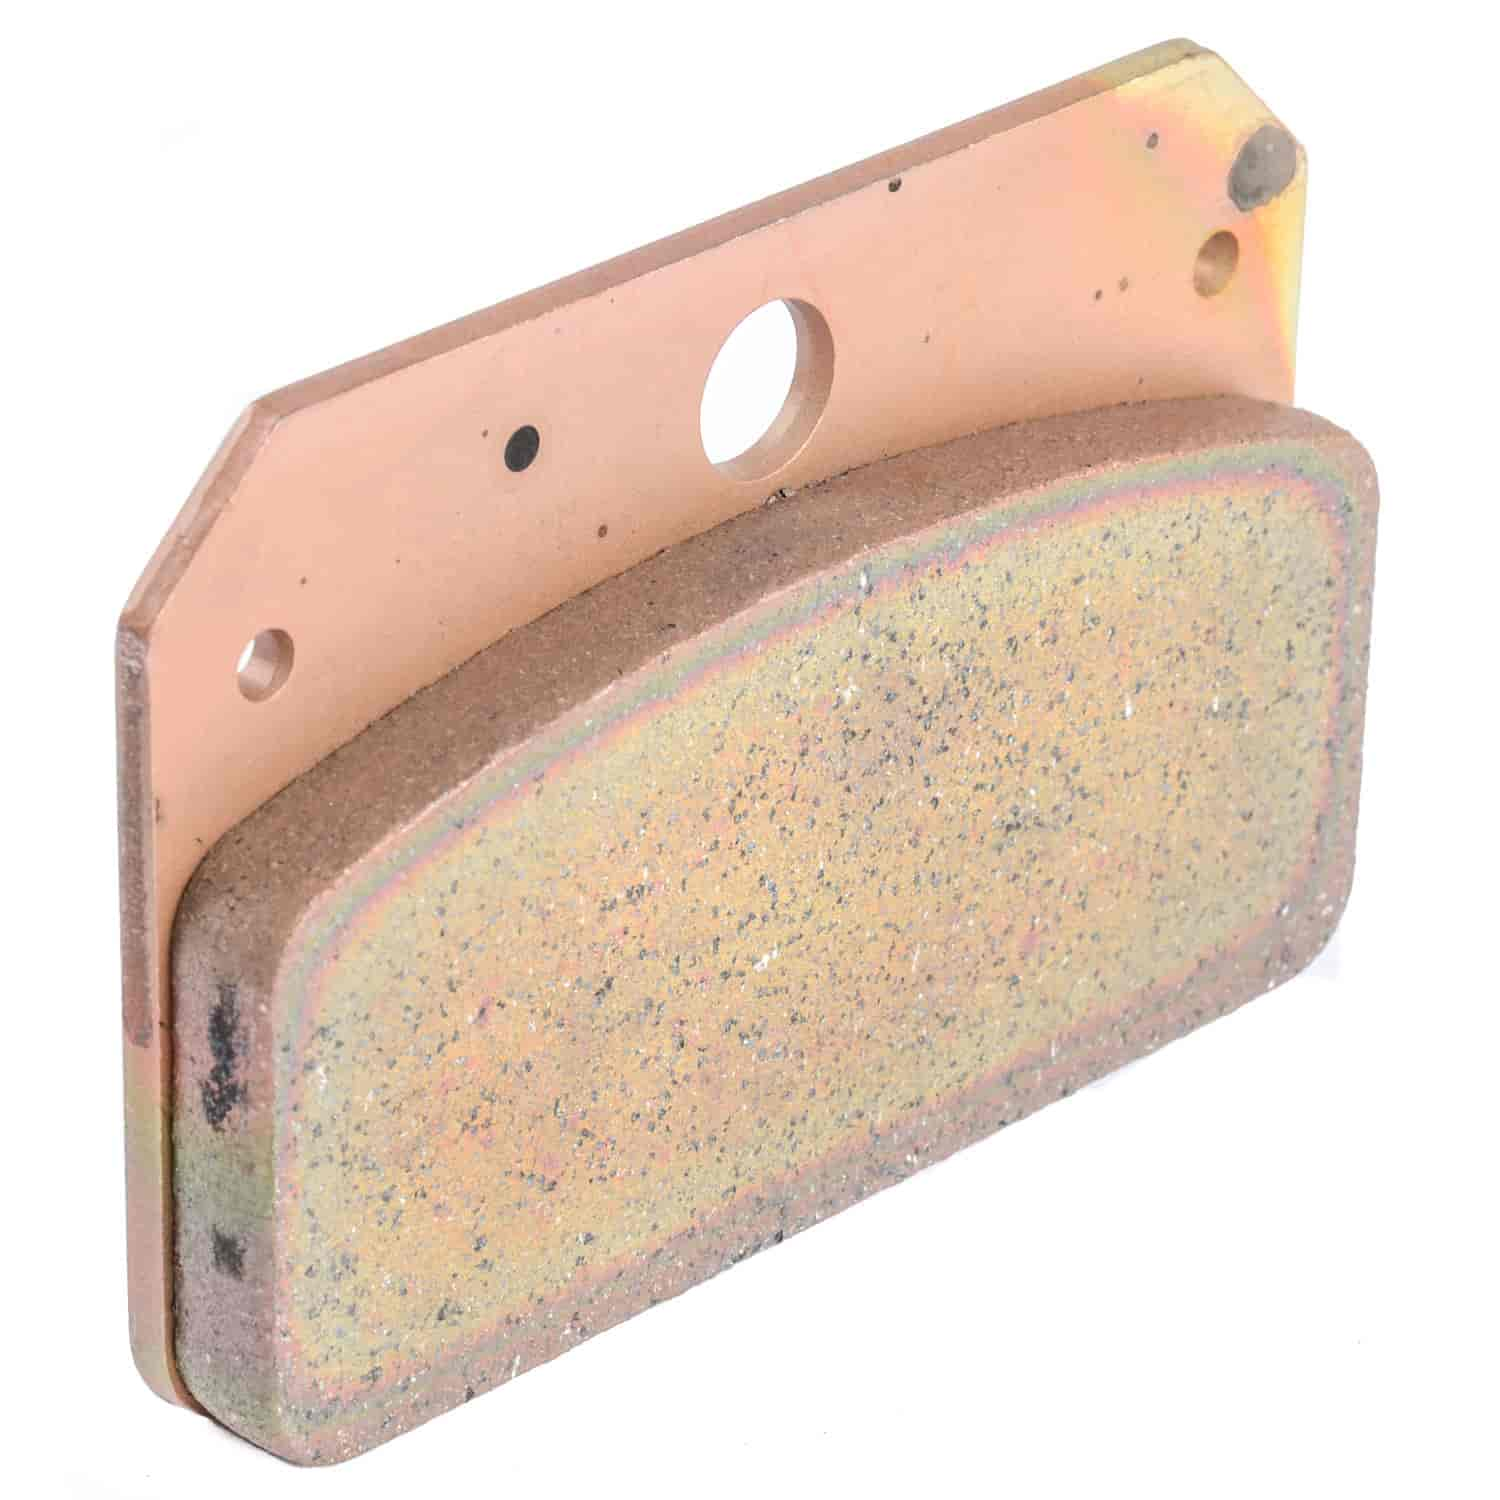 Strange Engineering B5020 - Strange Engineering Brake Pads